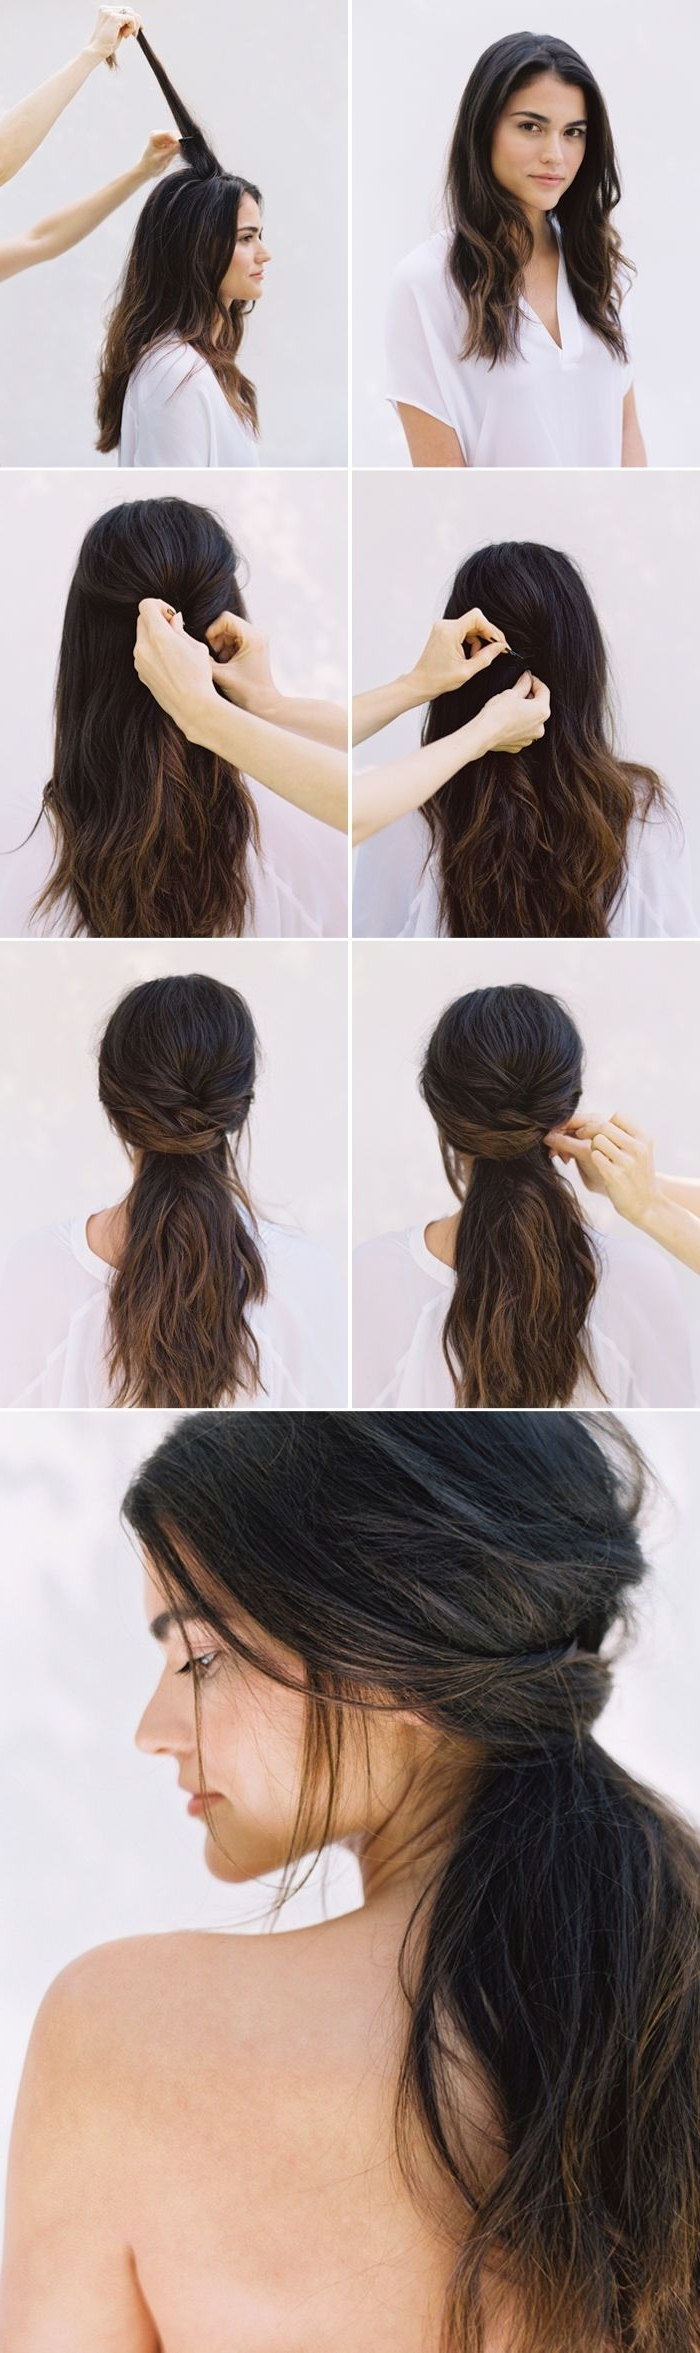 23 Stunning Half Up Half Down Wedding Hairstyles For 2016 – Pretty Regarding Latest Diy Simple Wedding Hairstyles For Long Hair (View 5 of 15)